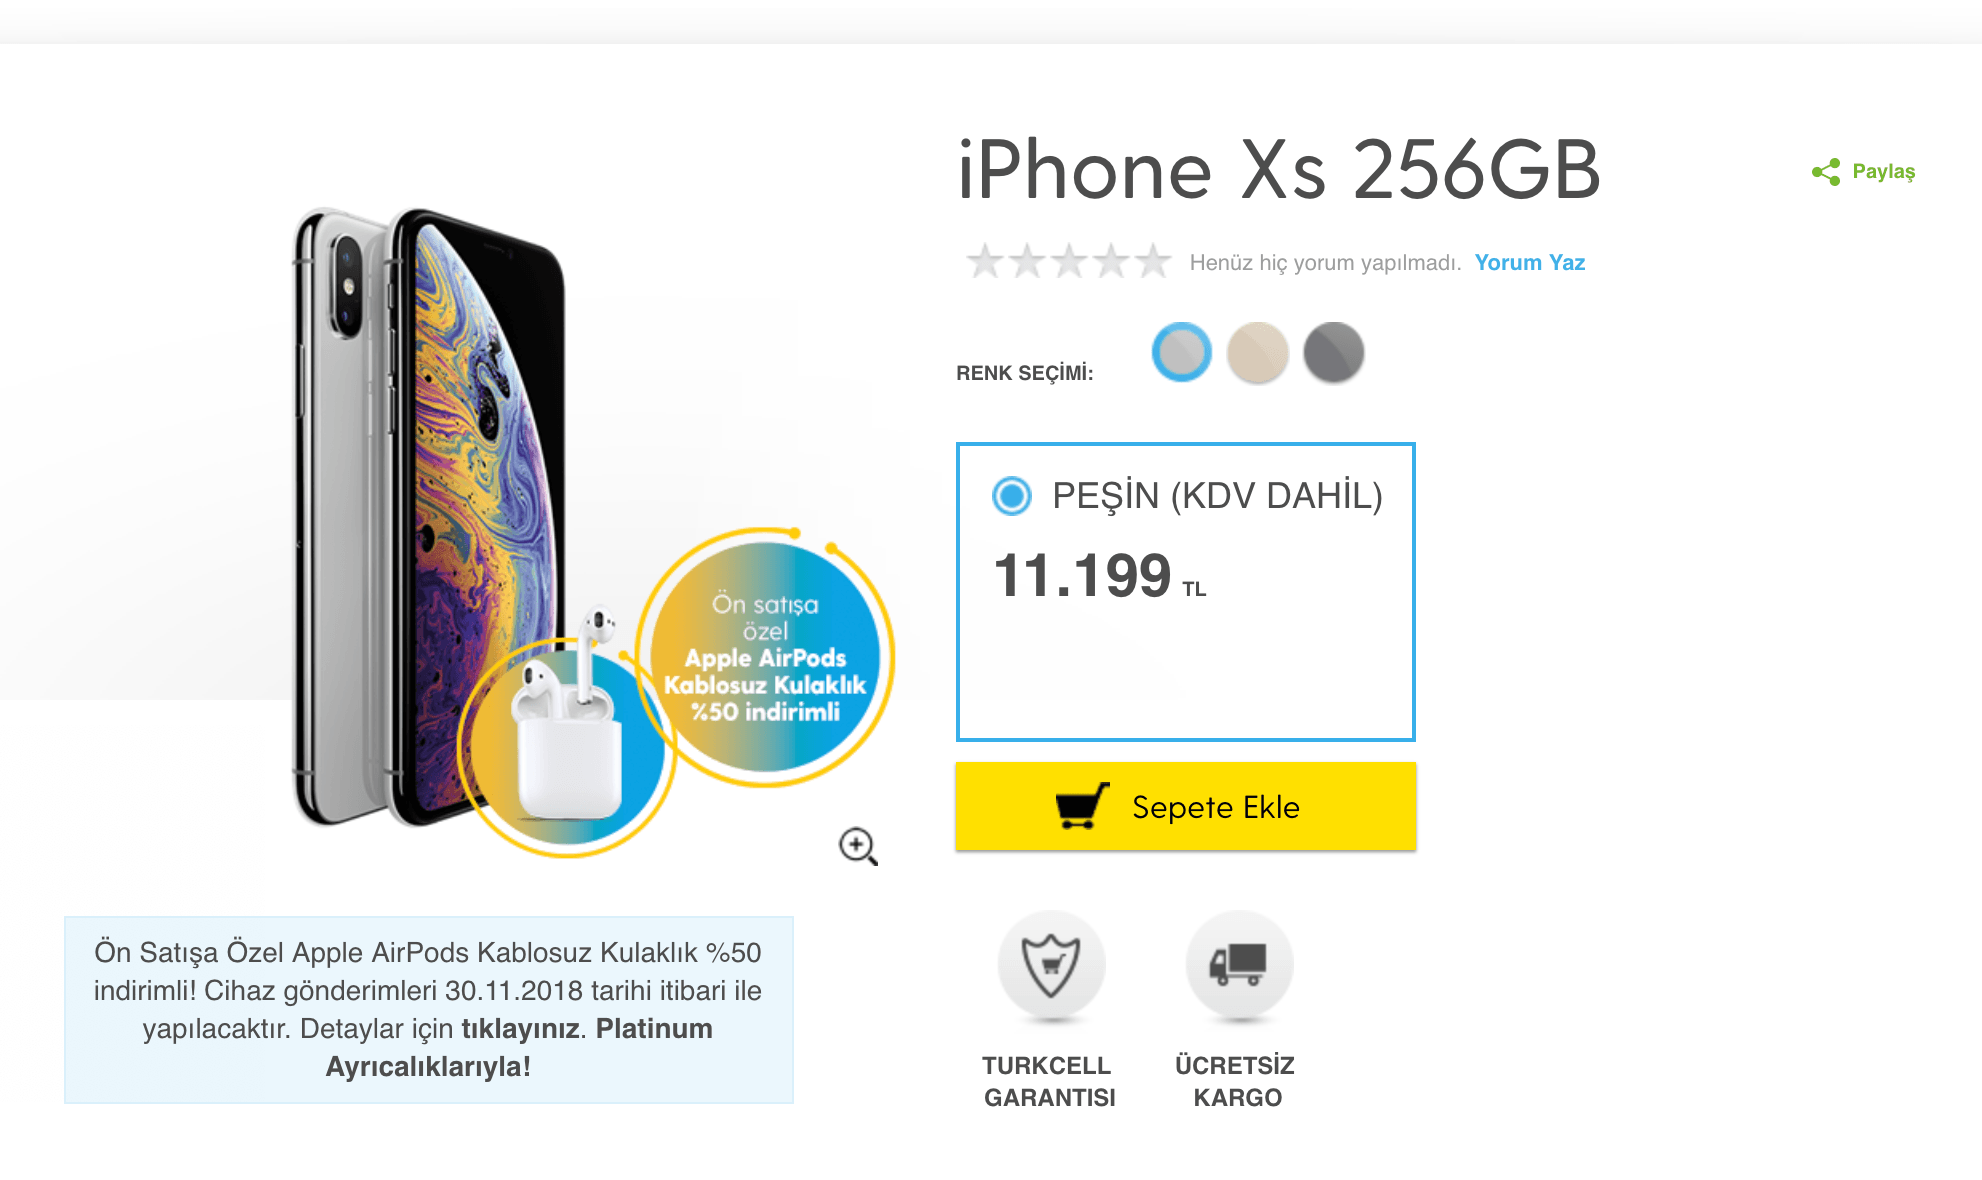 iphone xs 256 gb turkcell